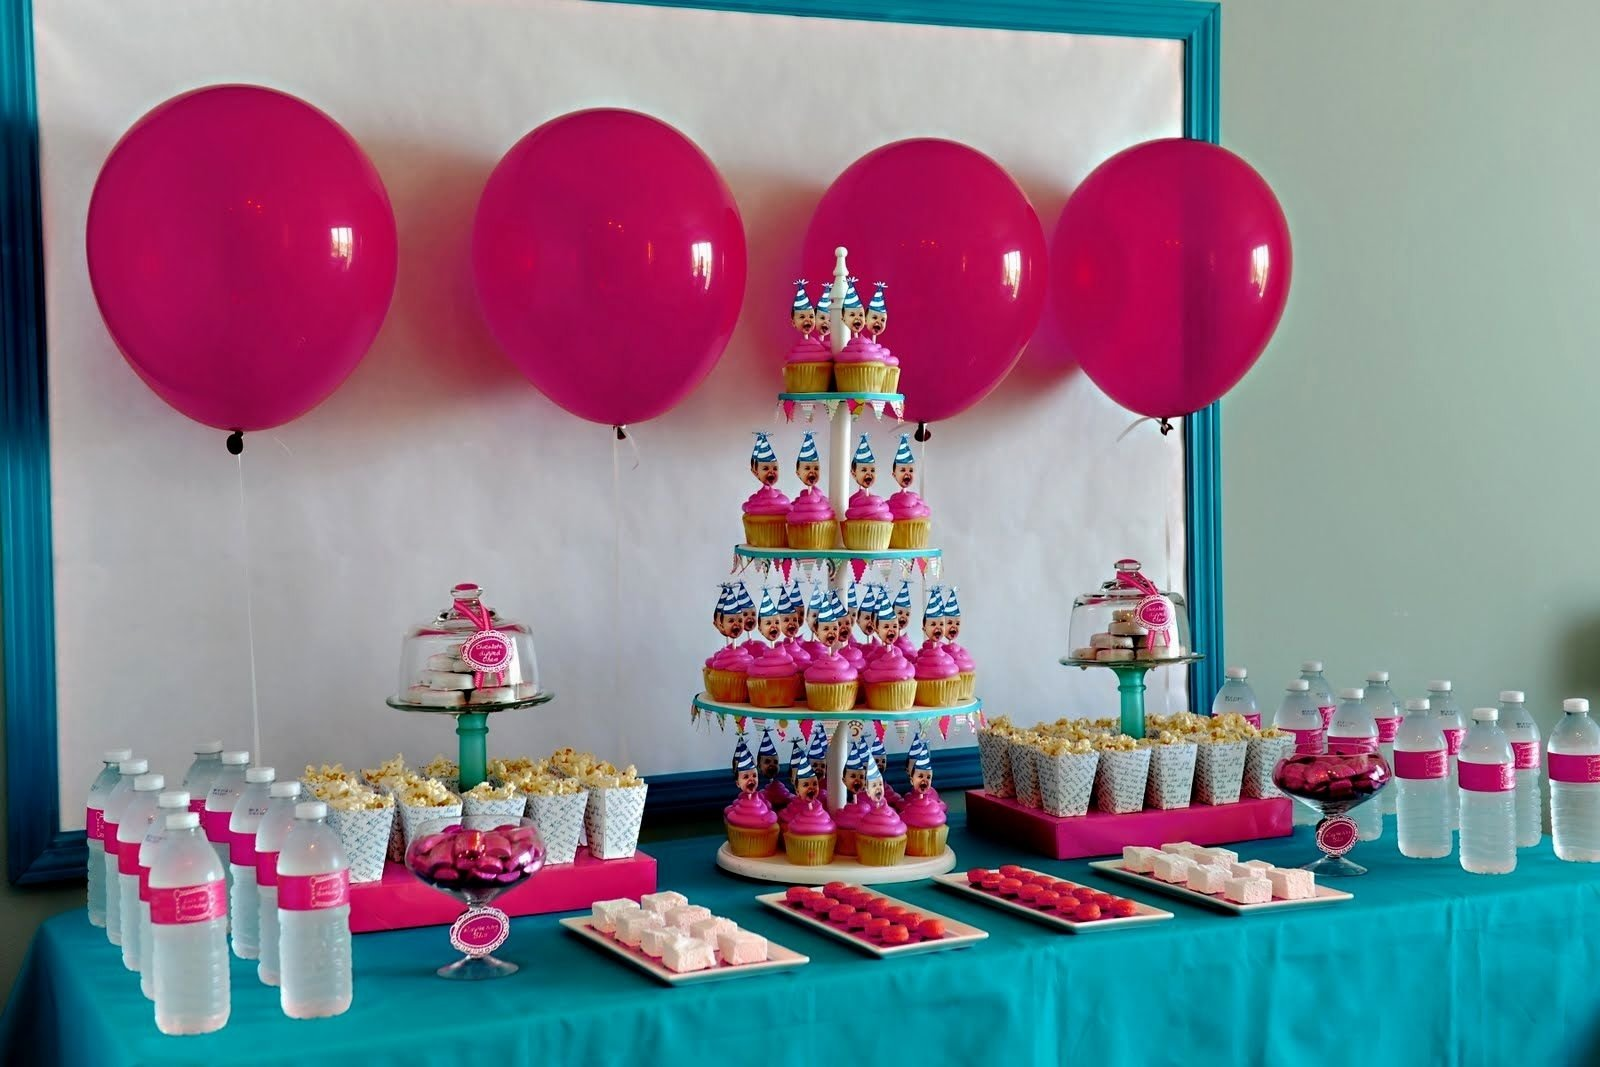 10 Fashionable 13 Year Old Girl Party Ideas 1st birthday party ideas for girl the minimalist nyc 5 2020